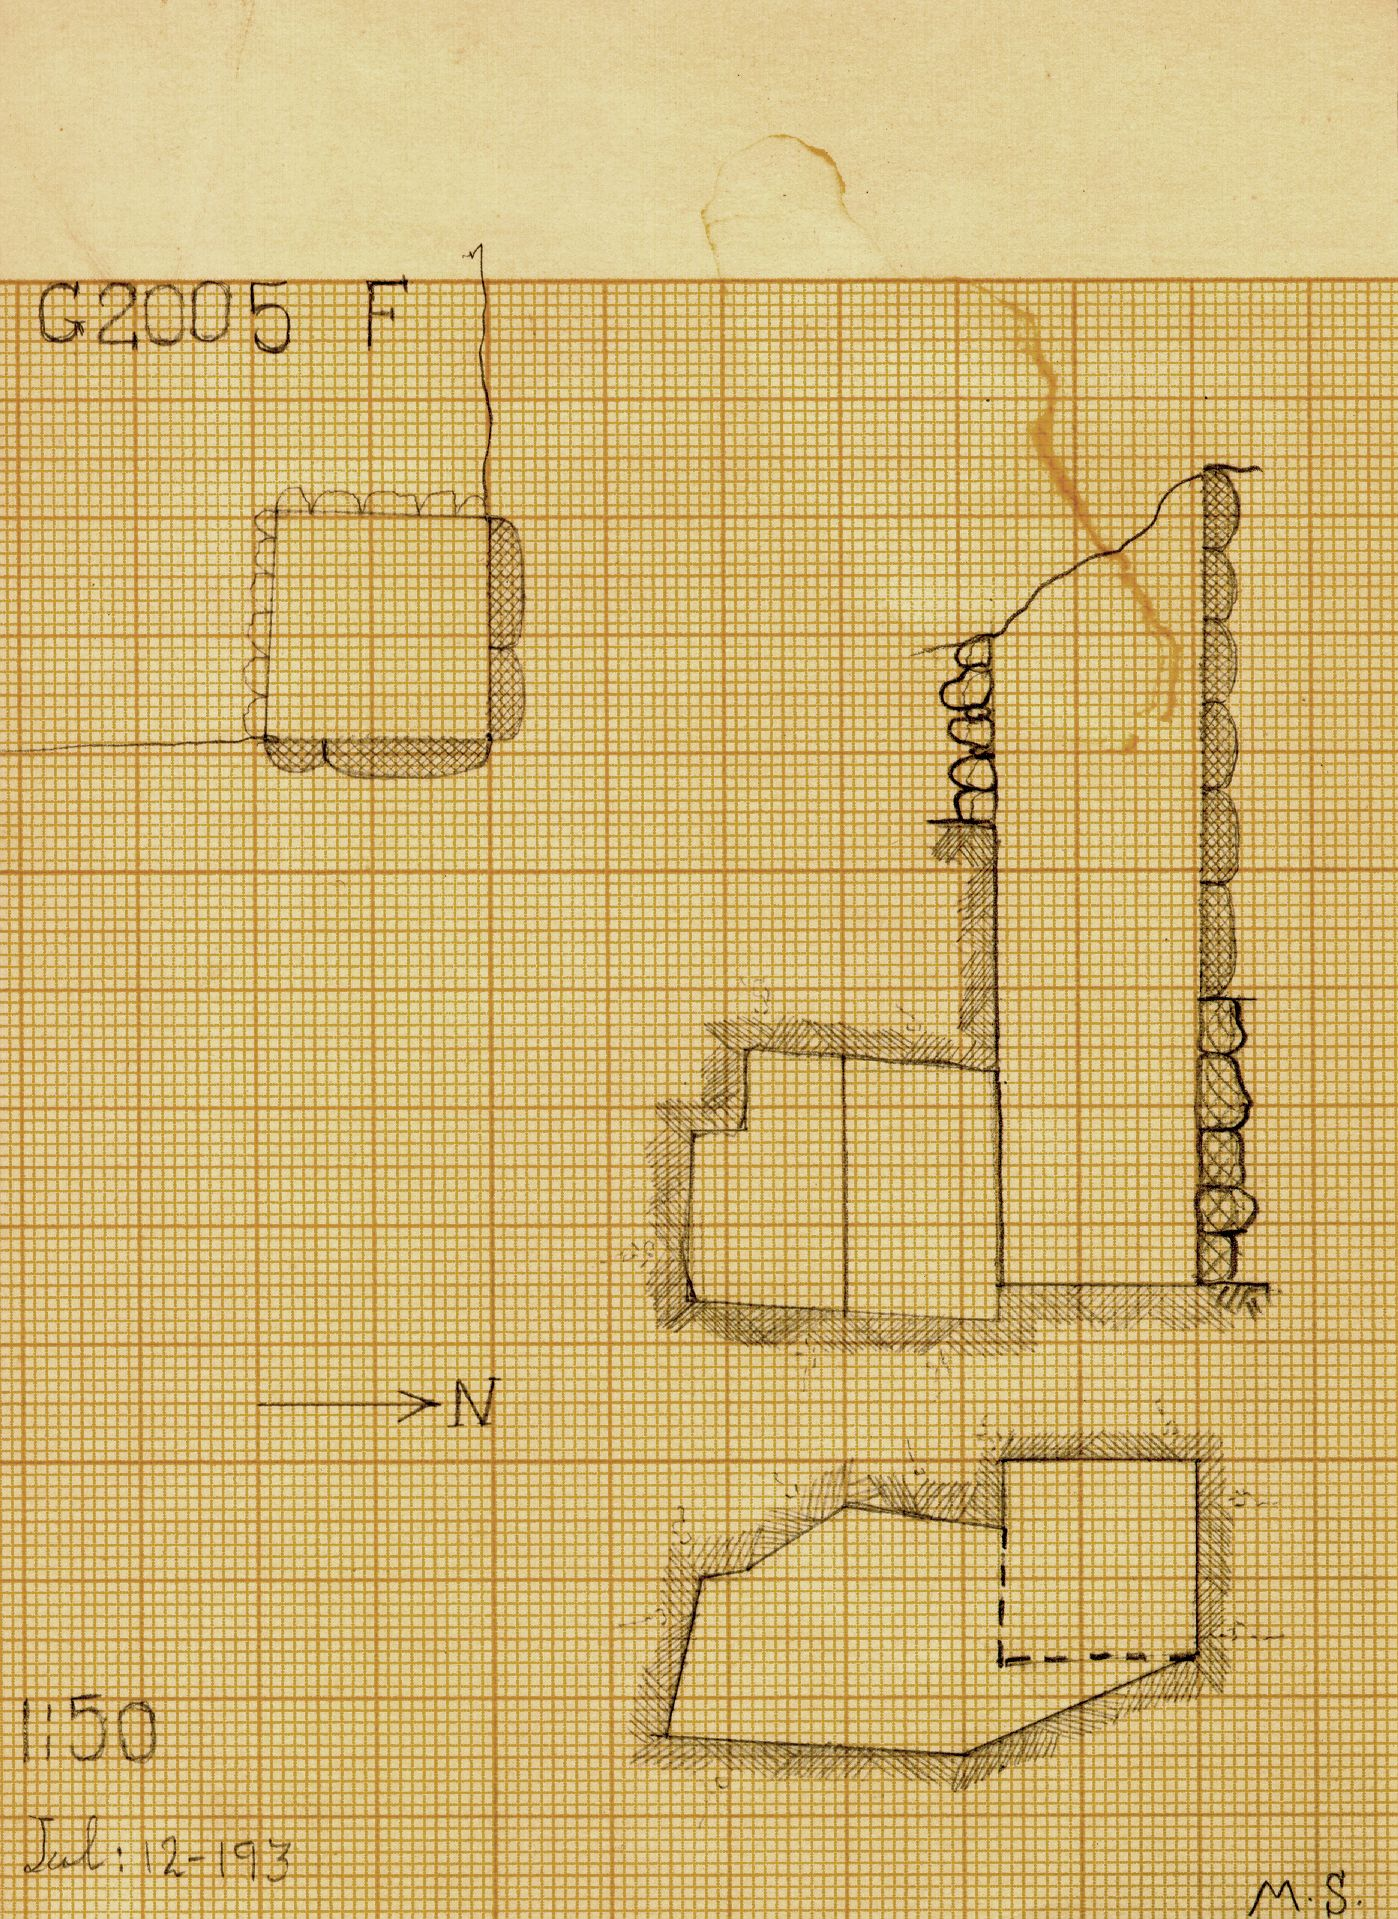 Maps and plans: G 2005, Shaft F